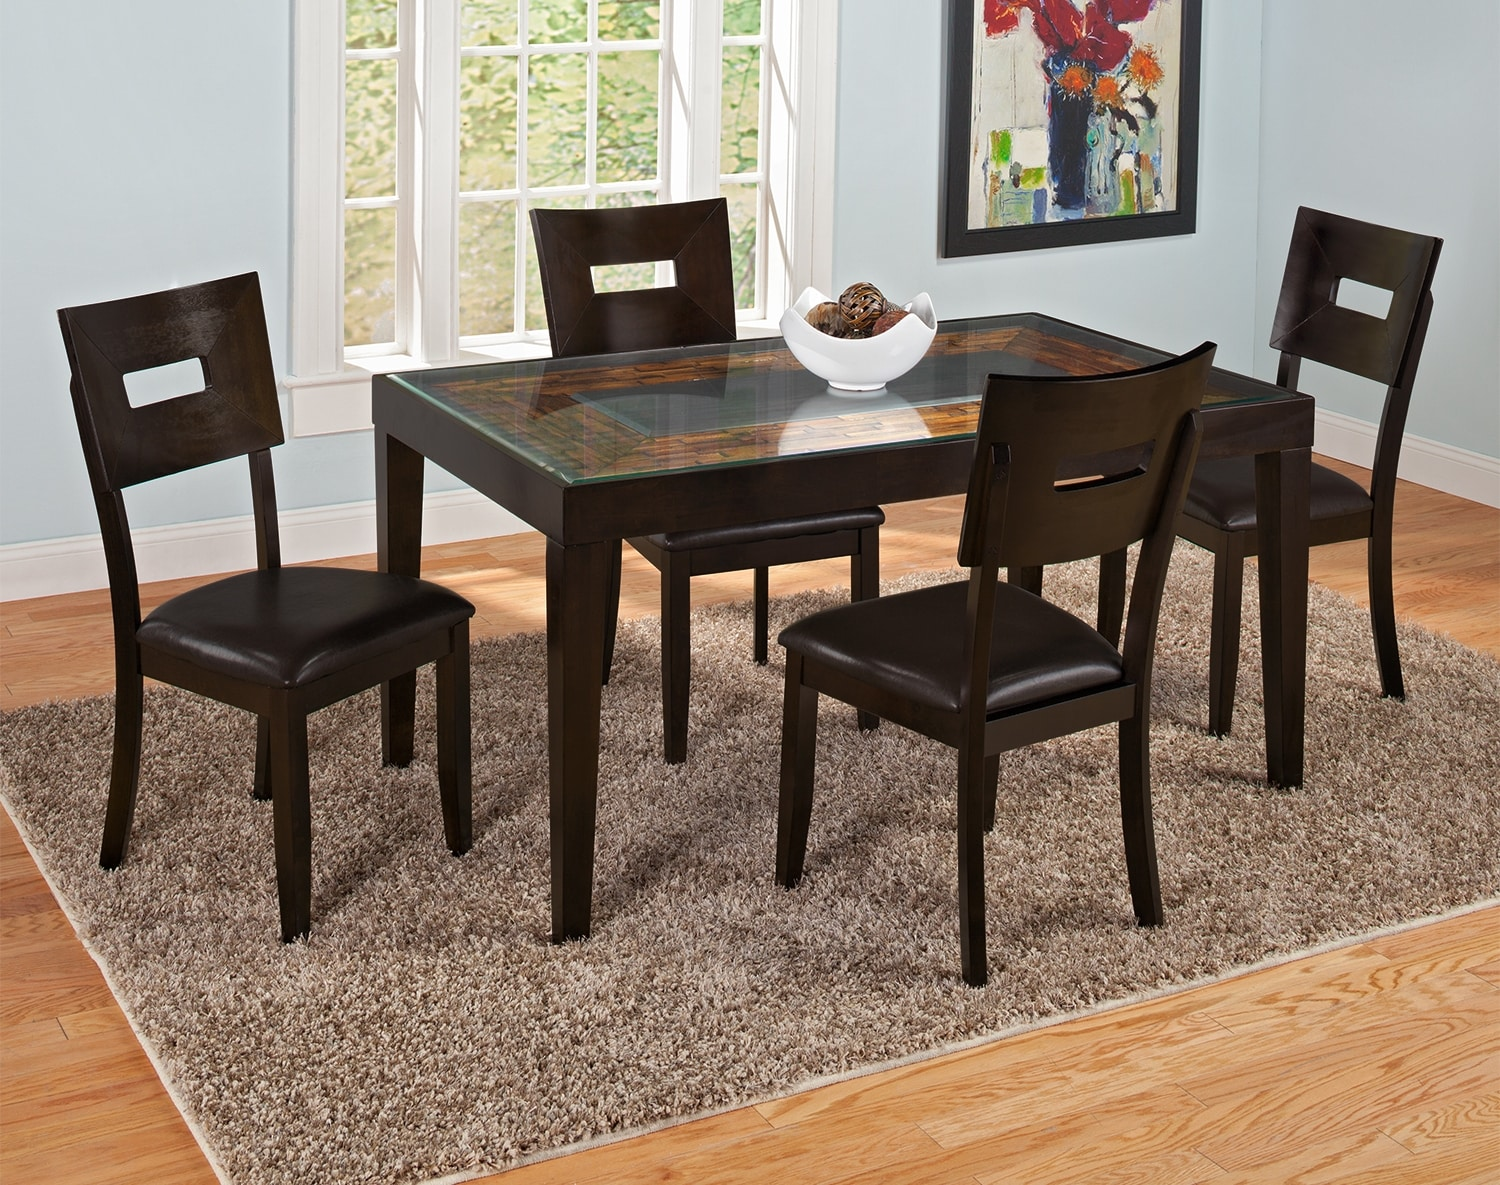 Dining Room Furniture - The Lambert Collection - Table